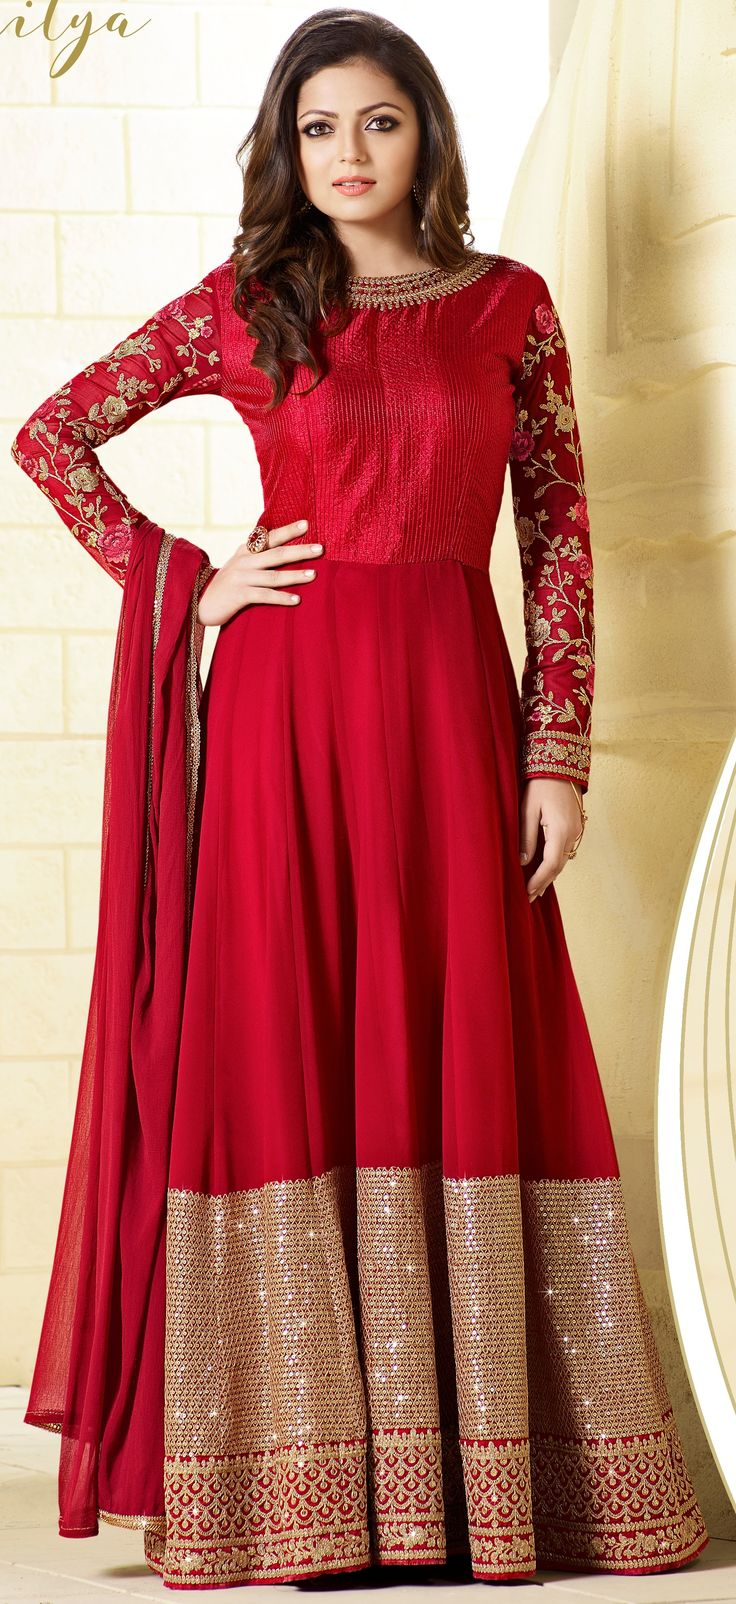 Drashti Dhami georgette deep pink floor length Anarkali suit with resham zari and squence work with neck and sleeves work and dupatta with lace work